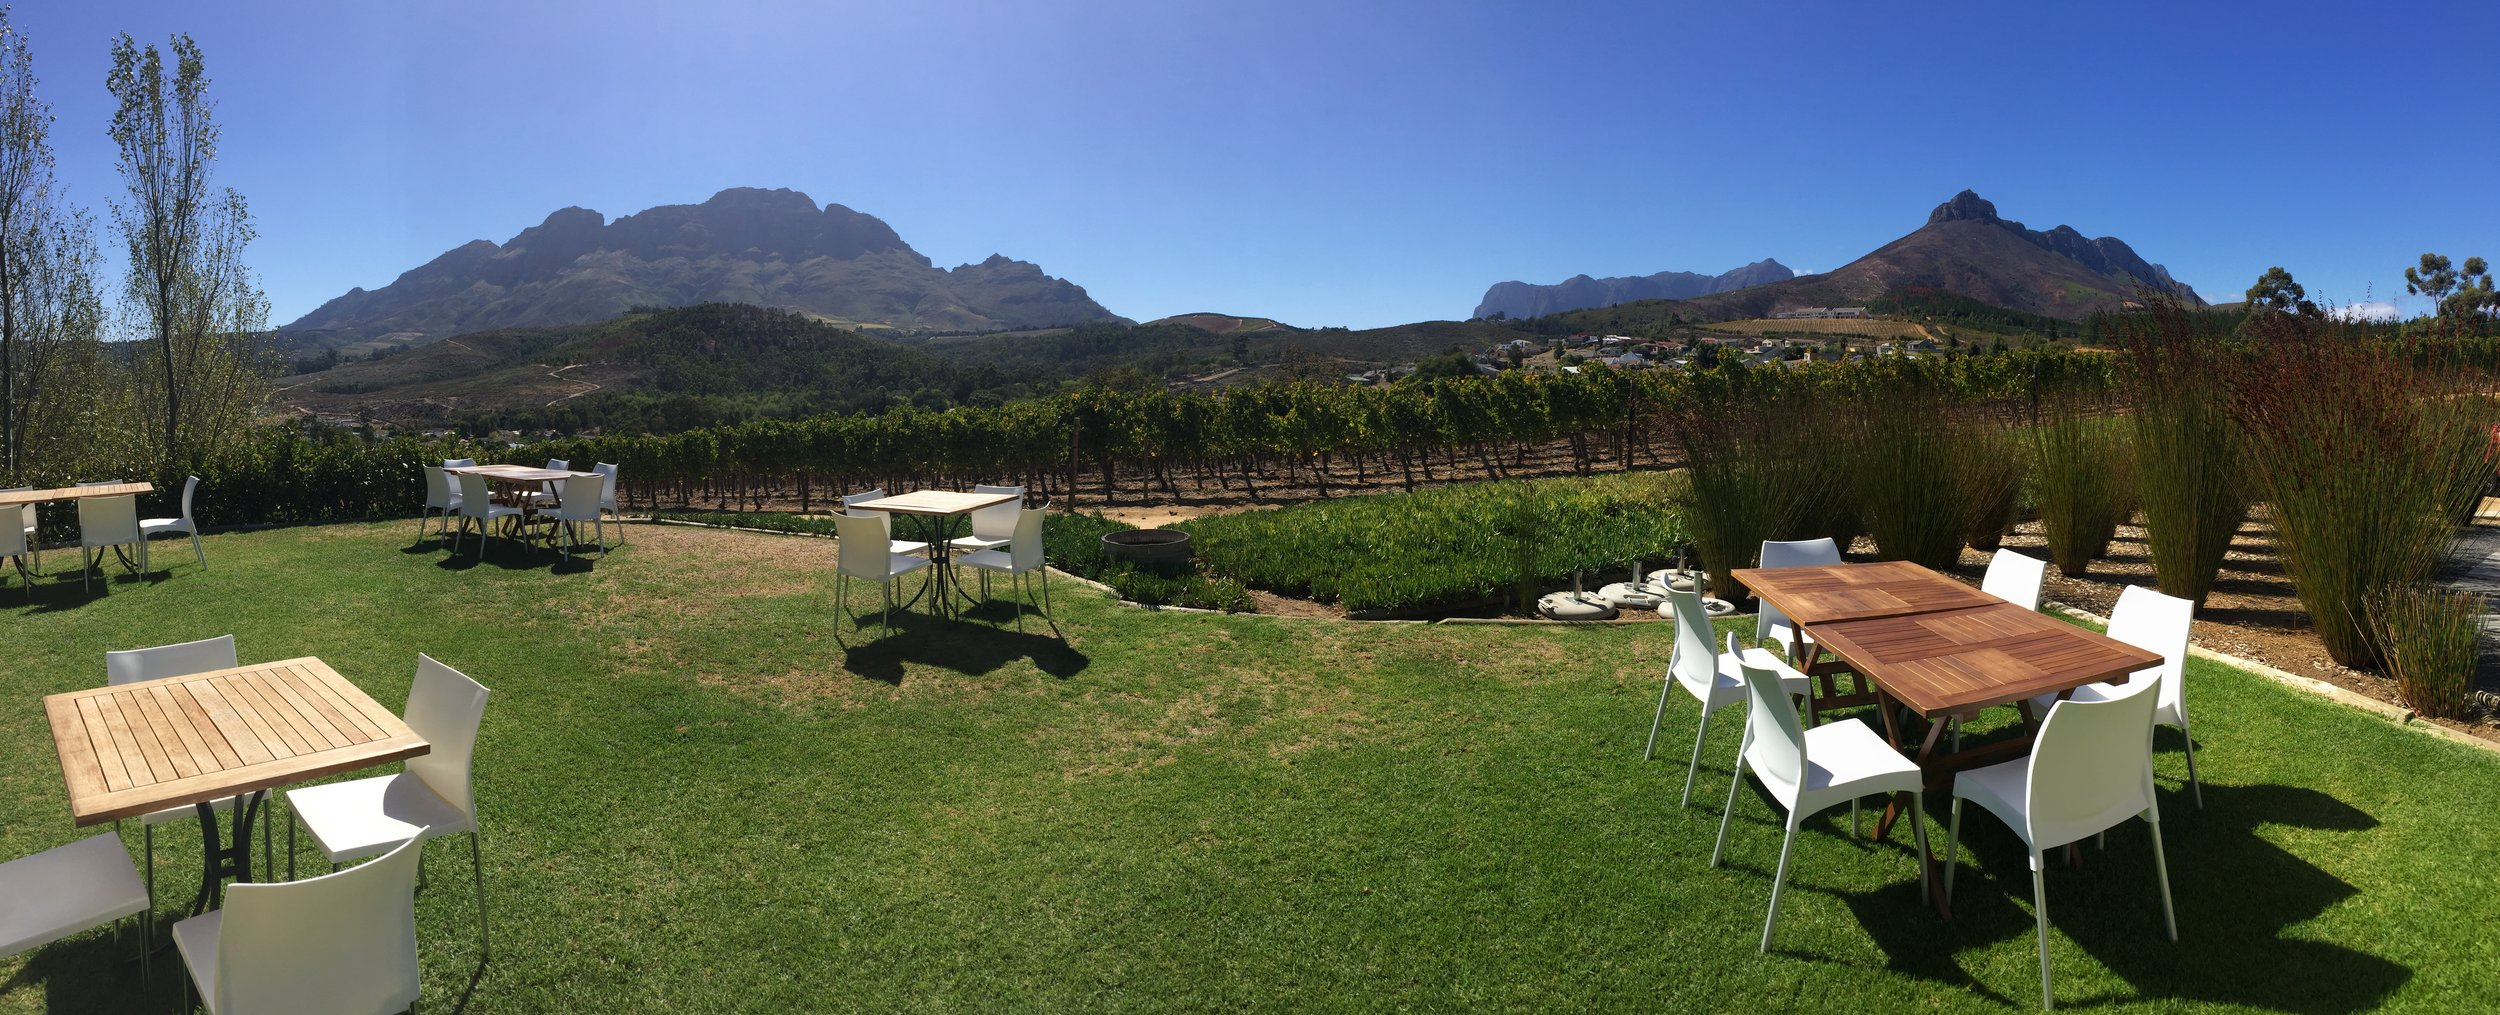 The views weren't all bad from the Tsiba Tsiba wine tour.